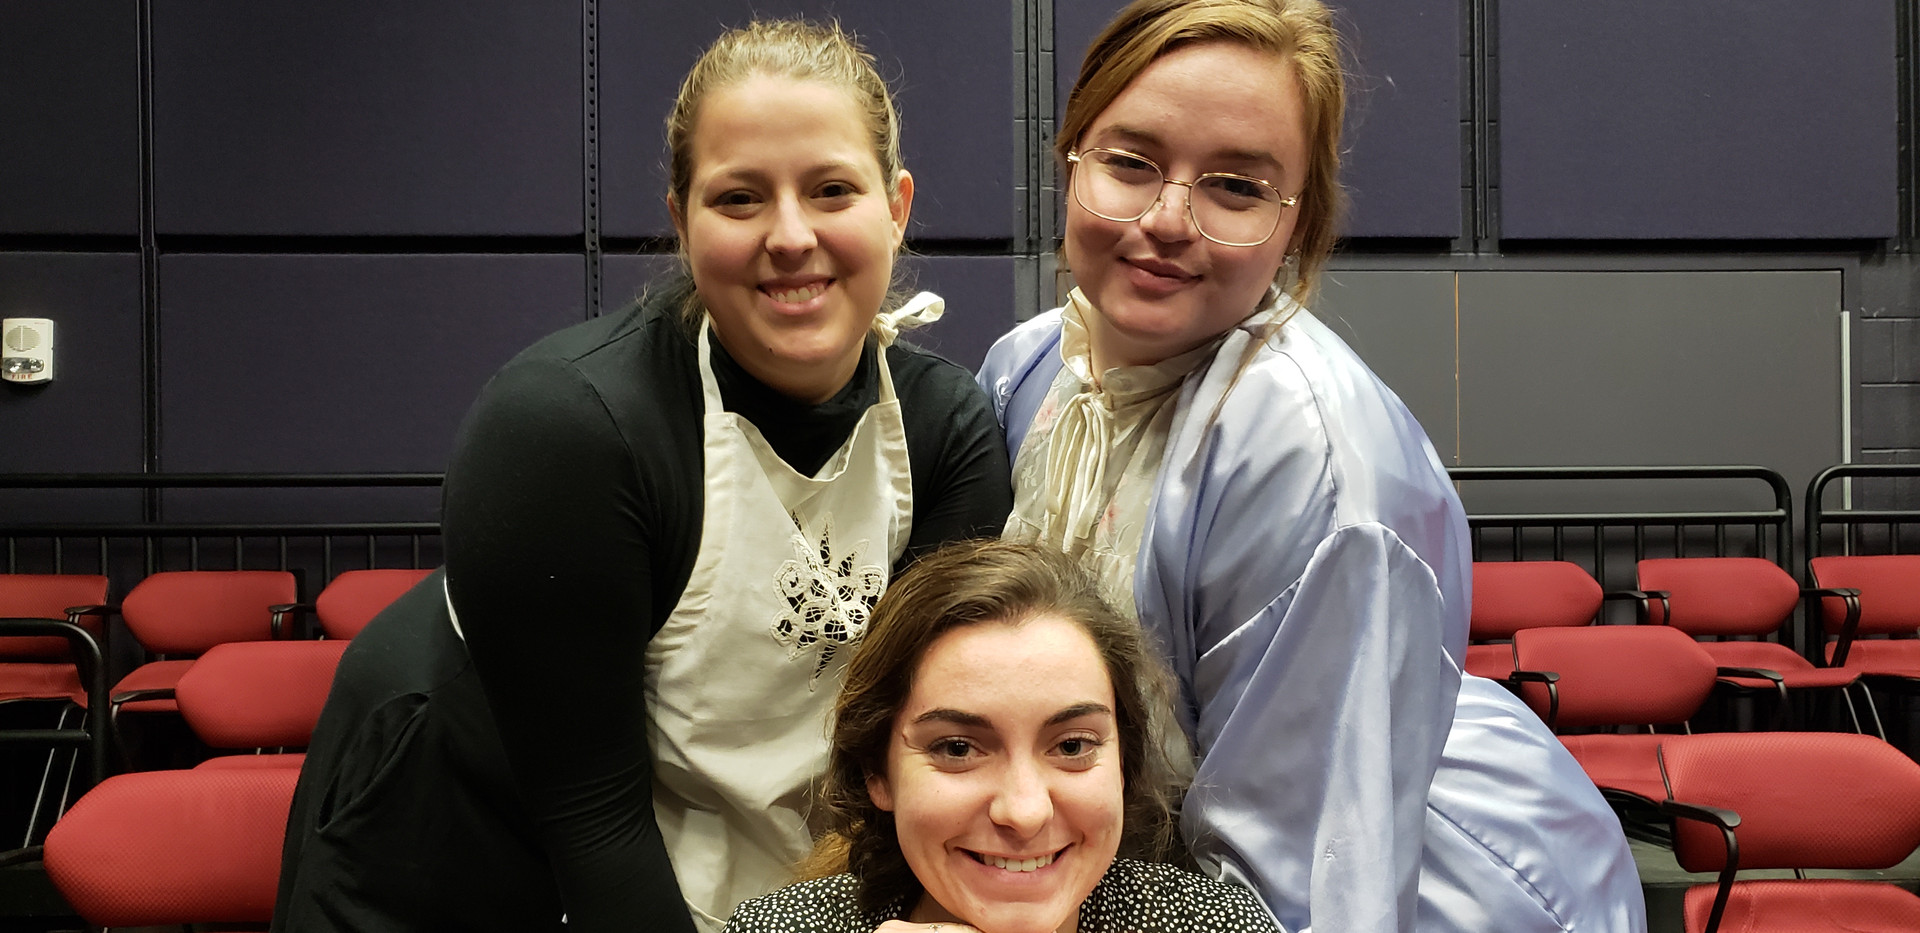 Promotional cast photograph during dress rehearsal. From left to right, Emma Holland (Agatha), Sarah Hogan (Mary Tilford), and Sydney Kendrick (Mrs. Tilford).